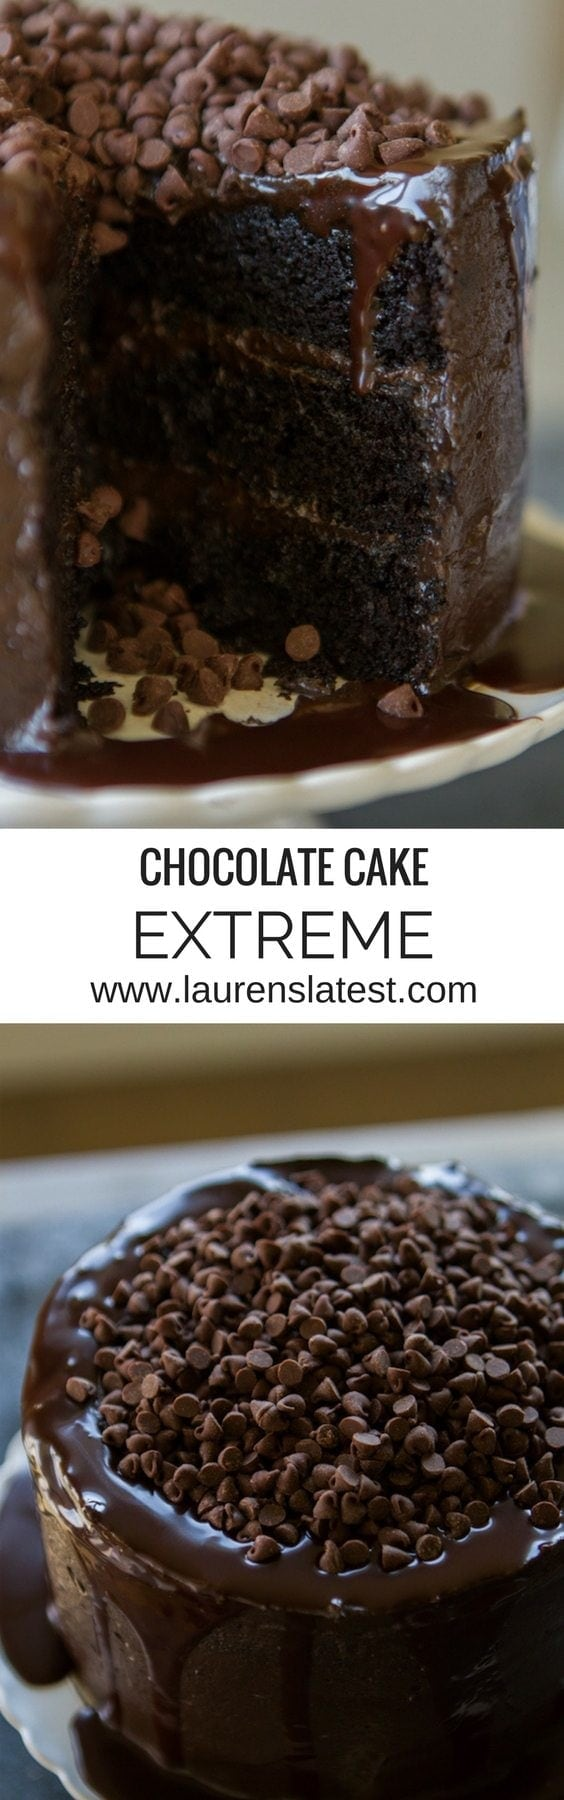 cheesecake chocolate extreme chocolate cheesecake extreme chocolate ...